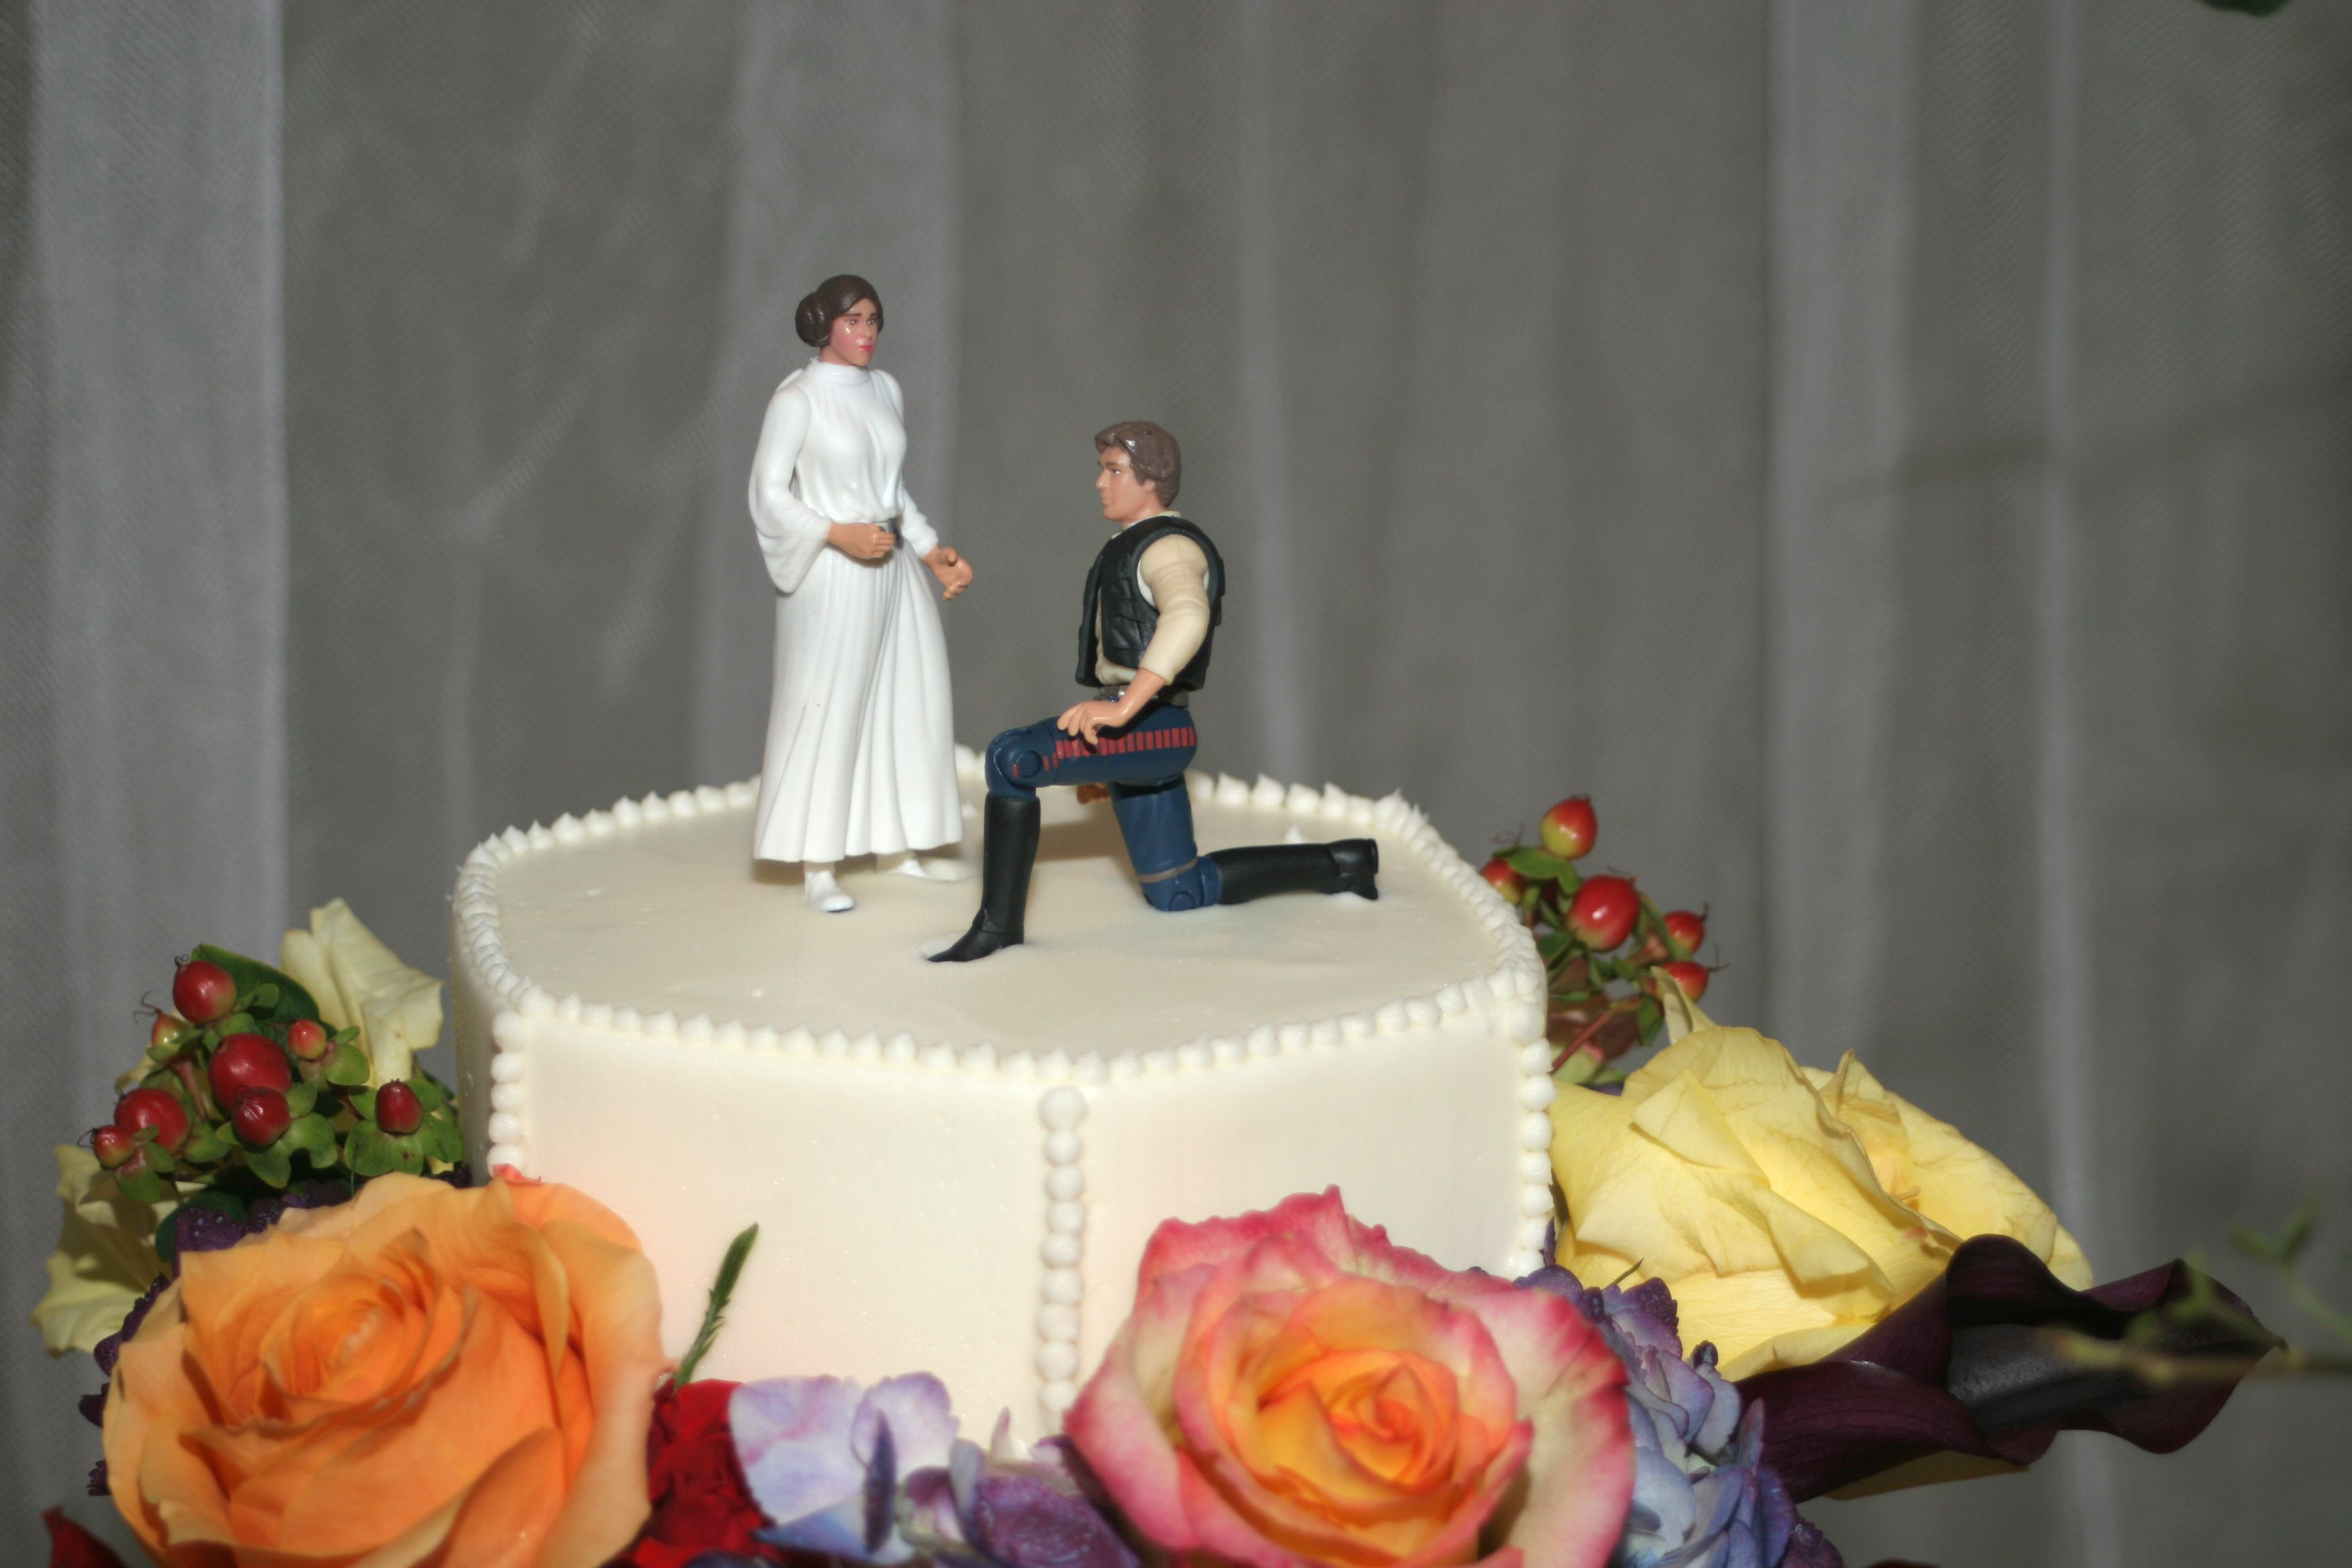 Action Figure Wedding Cake Toppers